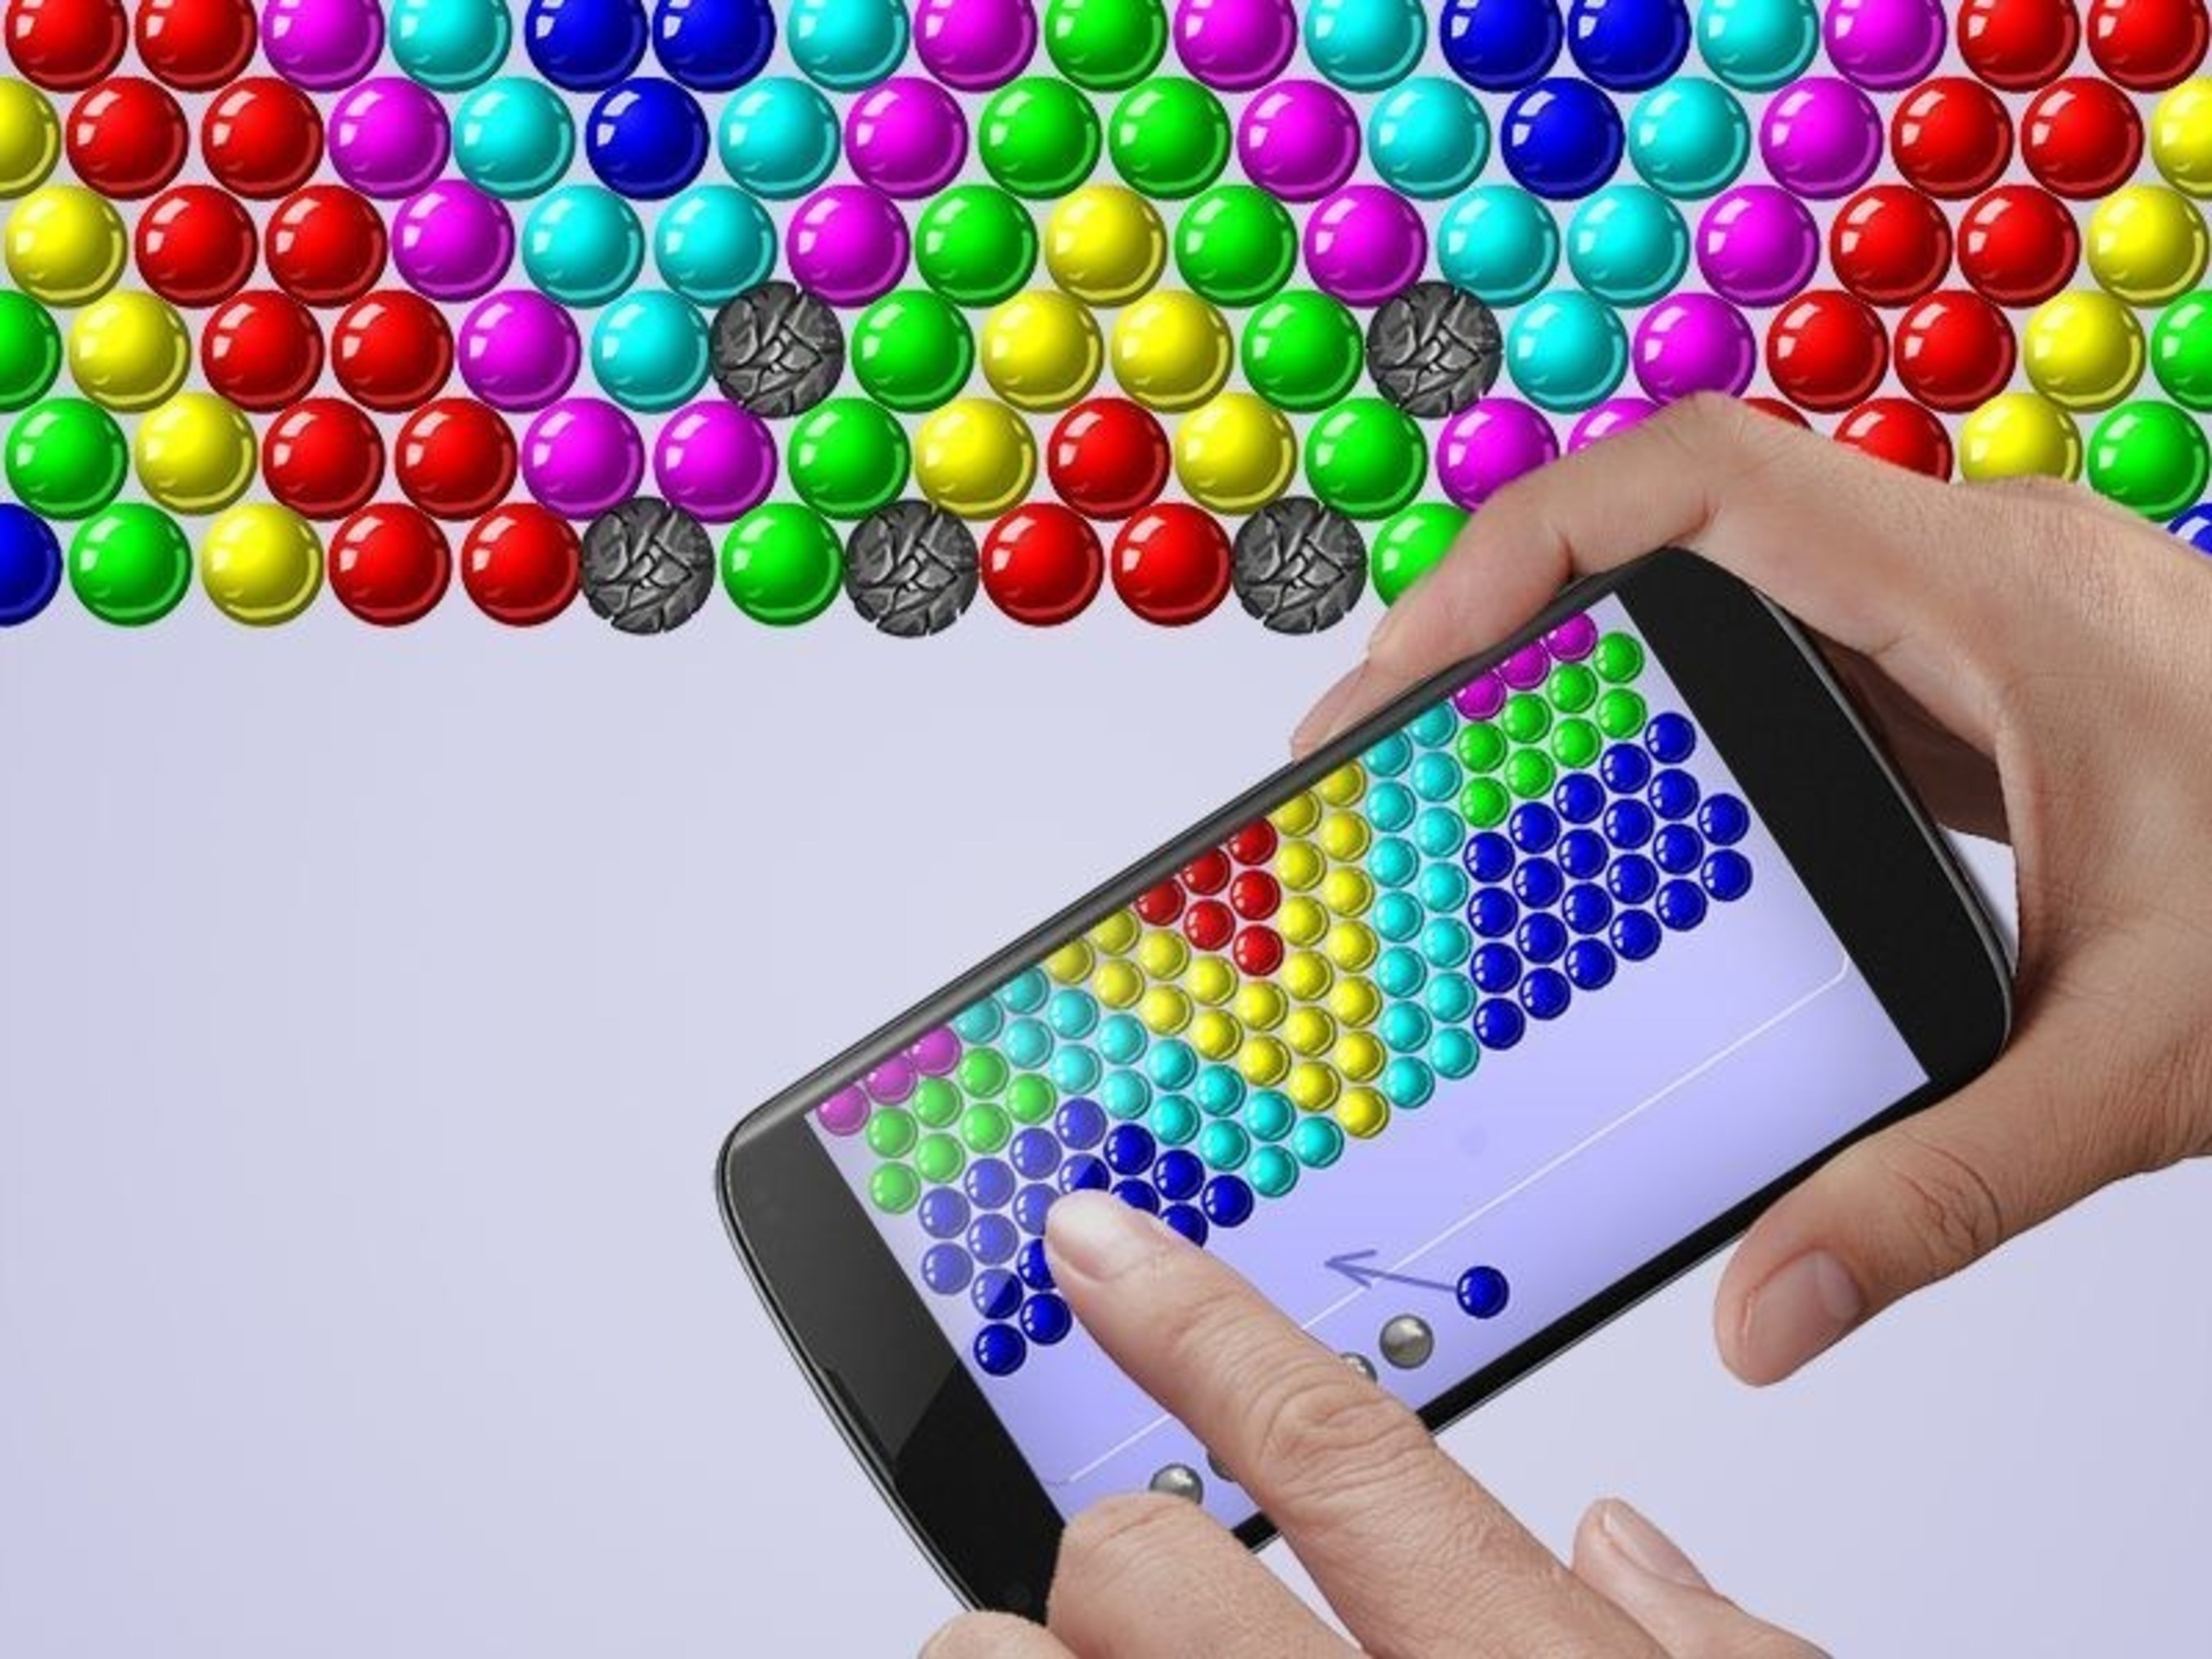 Bubble Shooter Arcade, the brand new Bubble game by Ilyon Dynamics, features a brand new game mode with over 400 levels of exciting and addictive fun, updated graphics and gameplay and a unique aim sight.